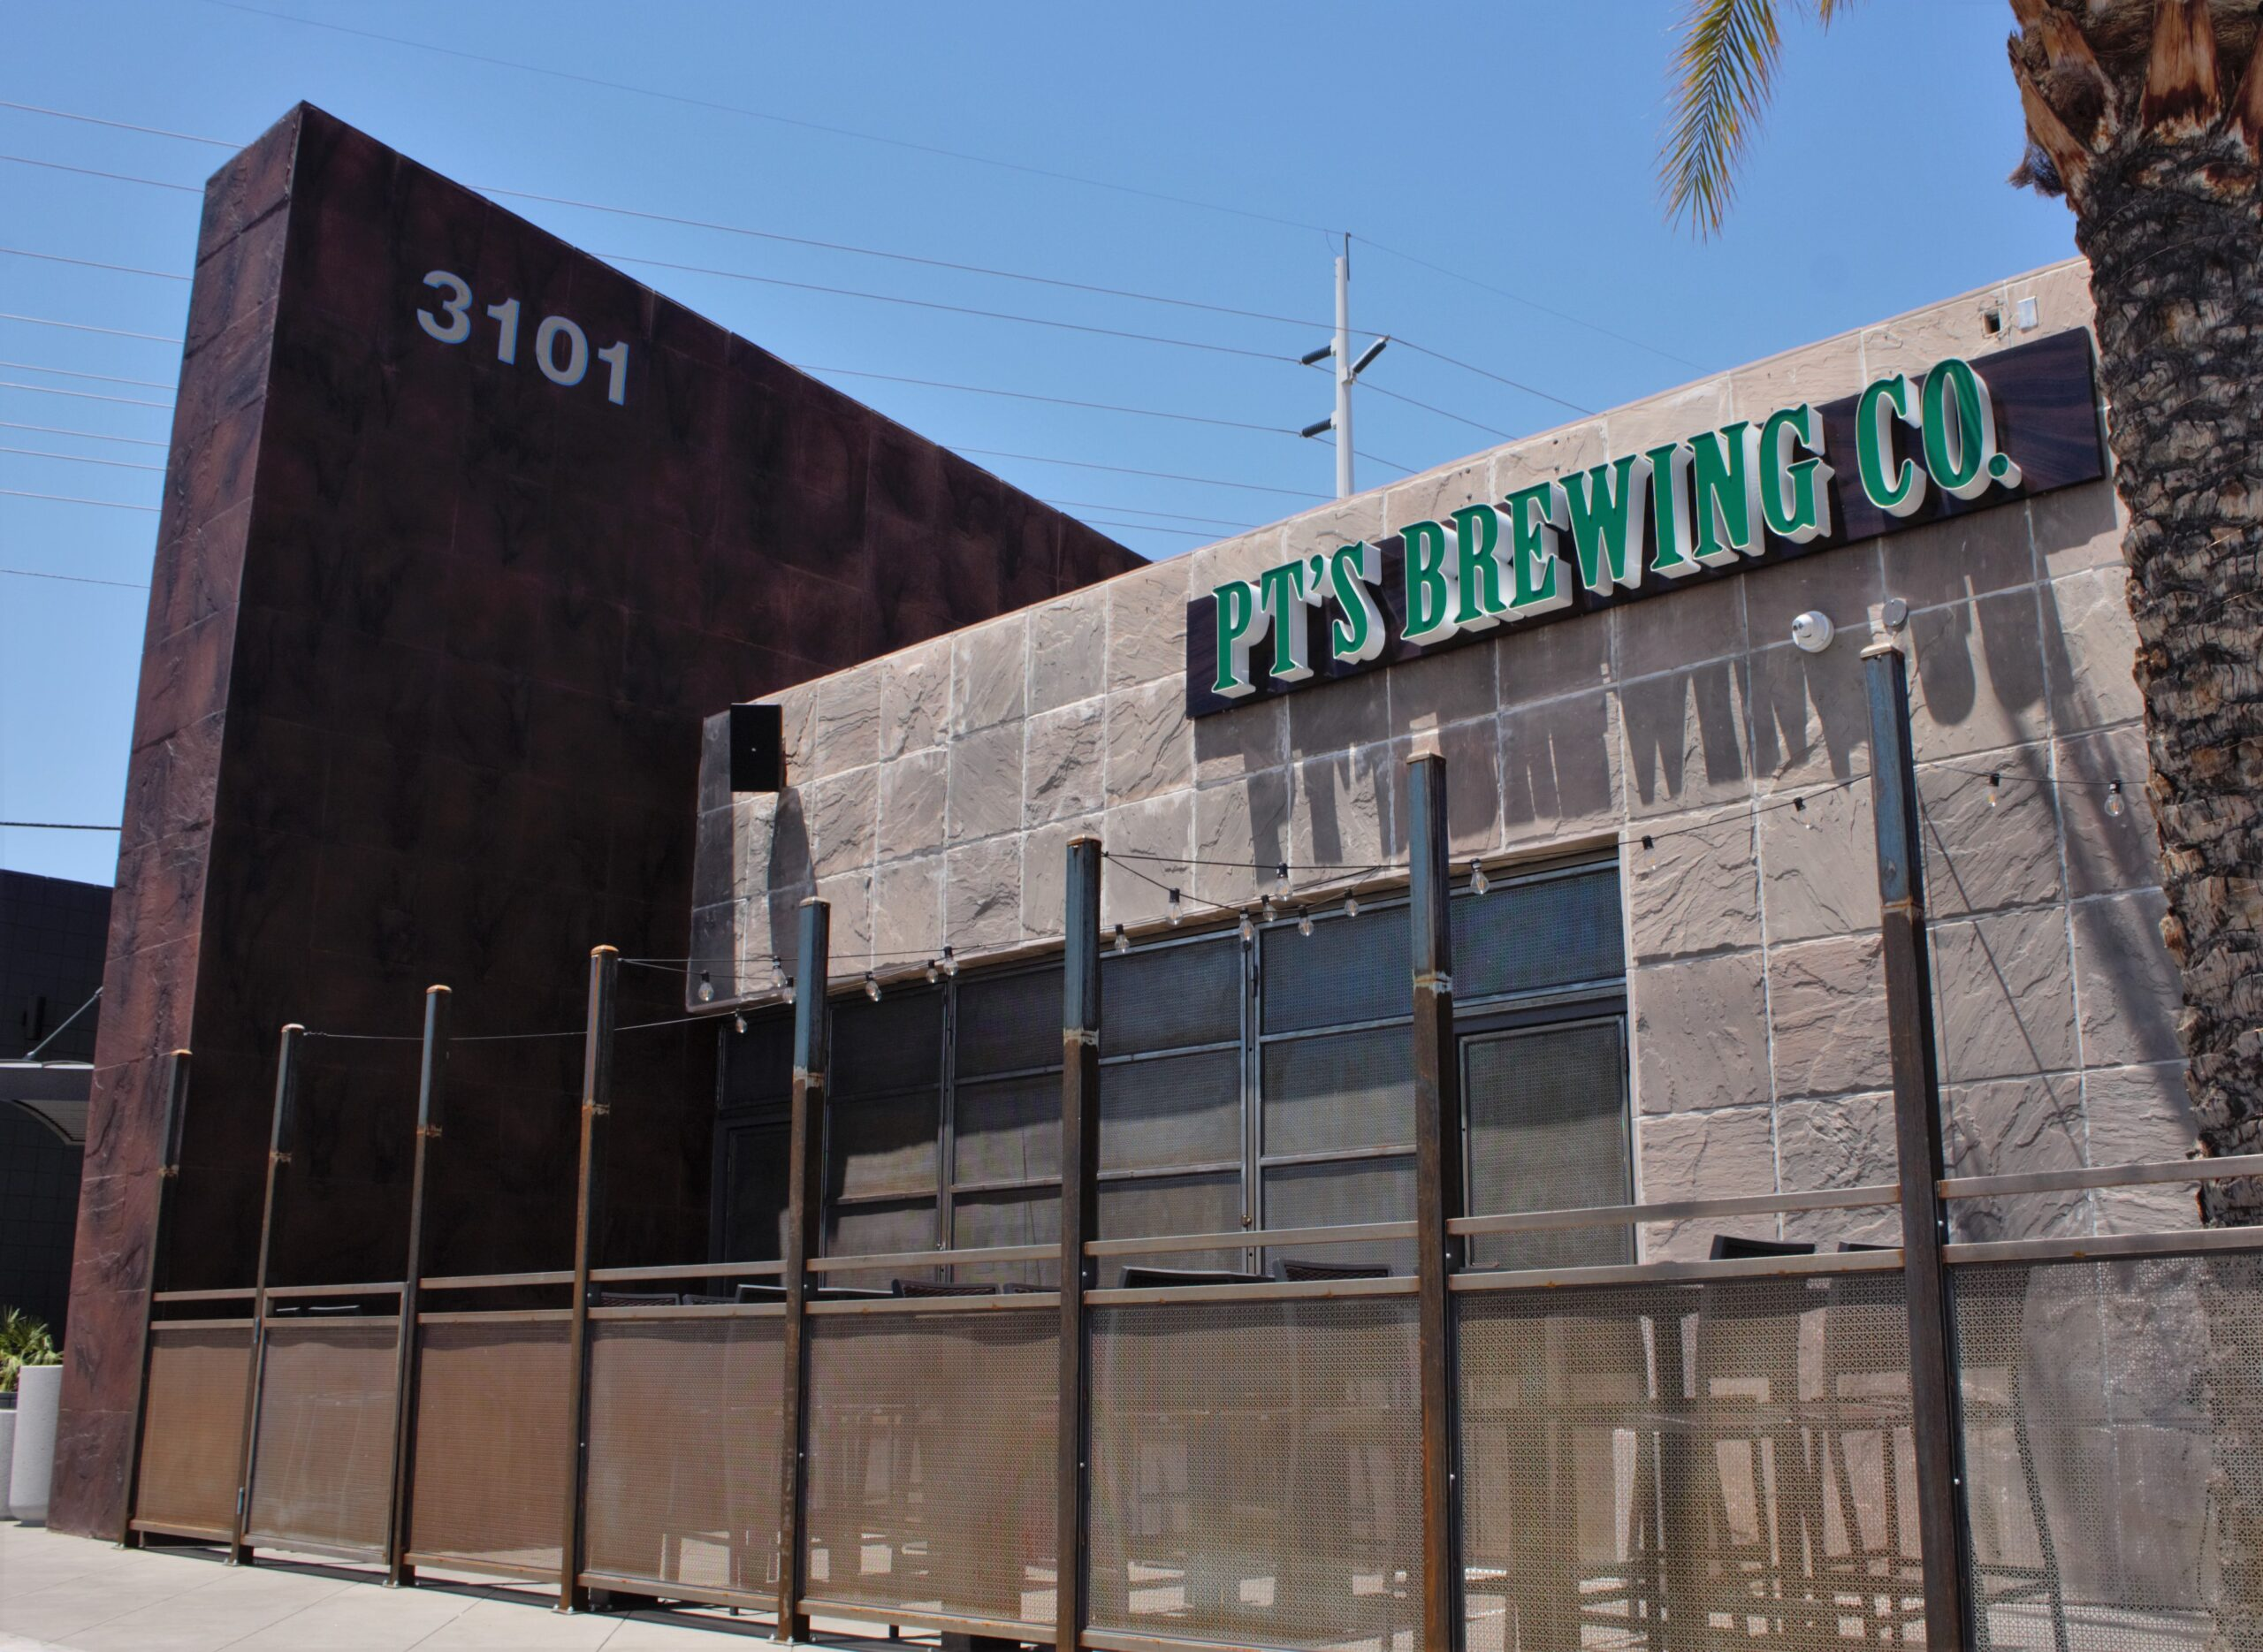 PT's Brewery